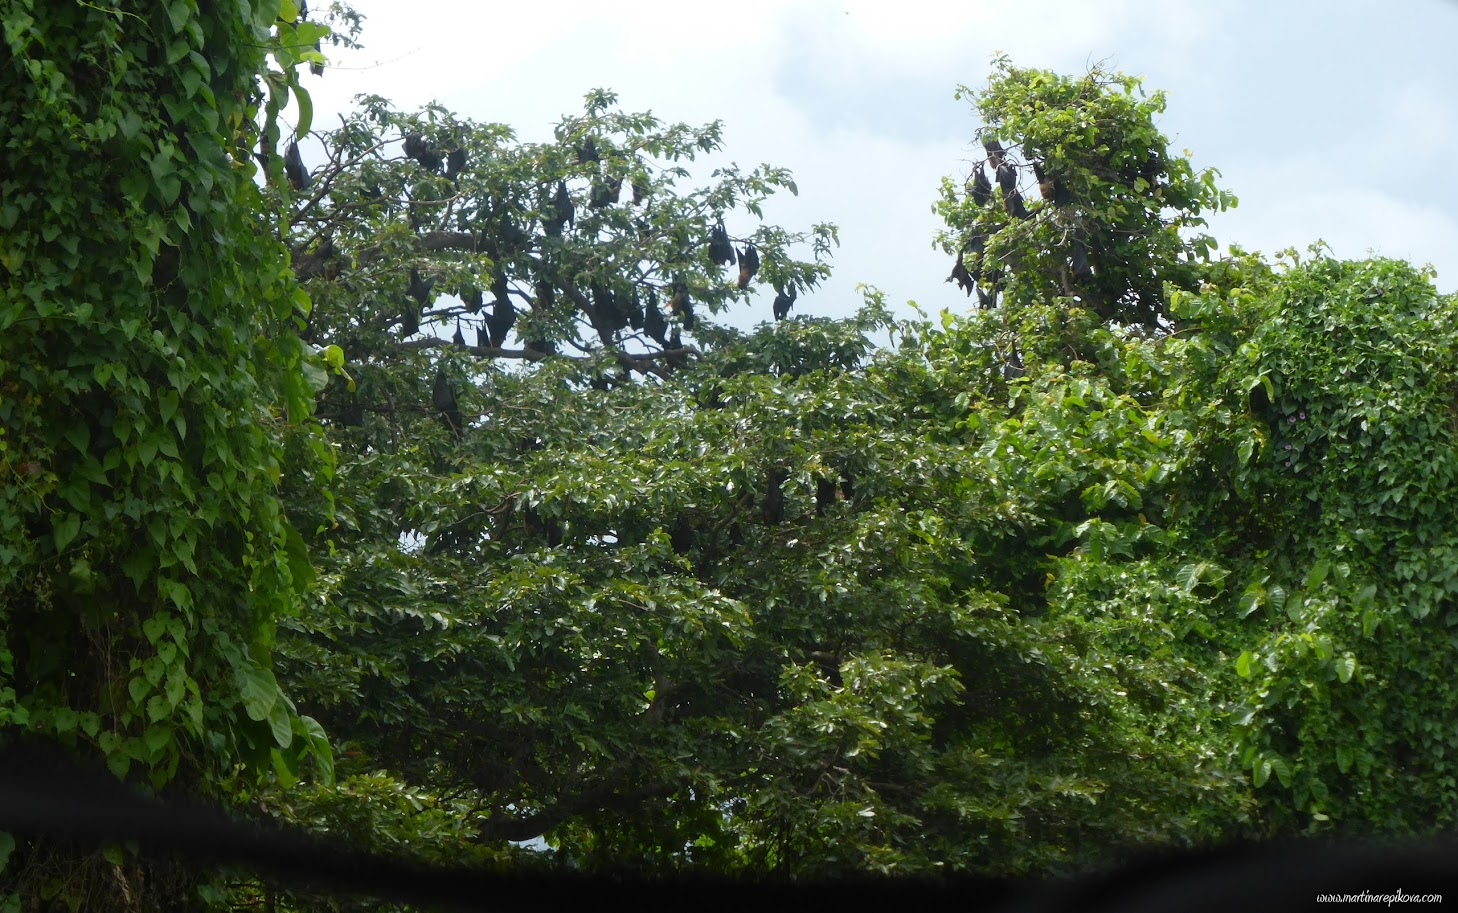 Bats on a tree, Sri Lanka